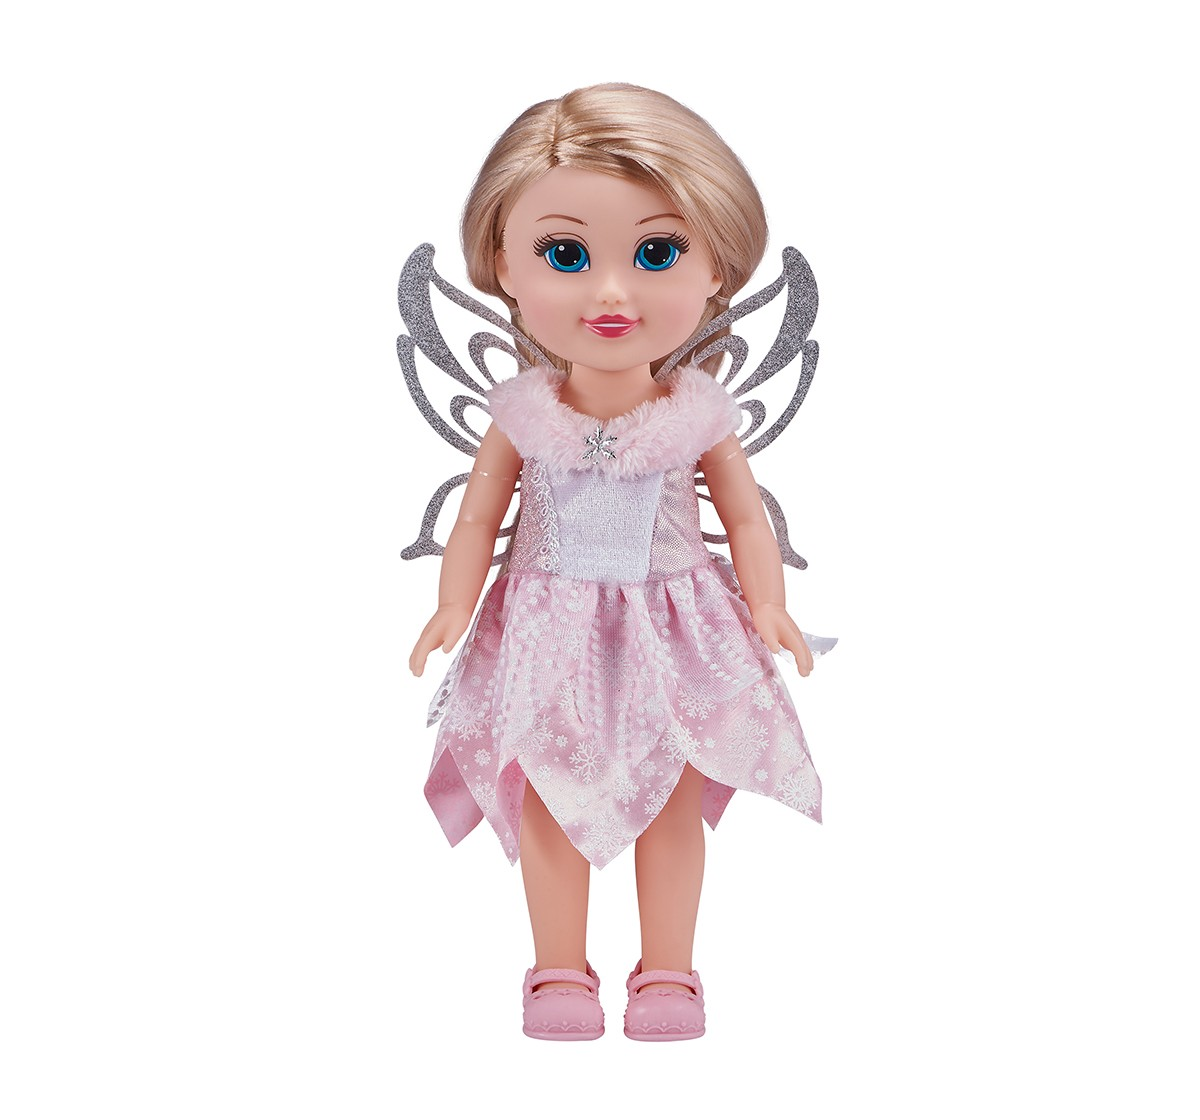 """Sparkle Girlz 13"""" Cuties - Fairy, Winter Princess Dolls & Accessories for Girls age 3Y+"""